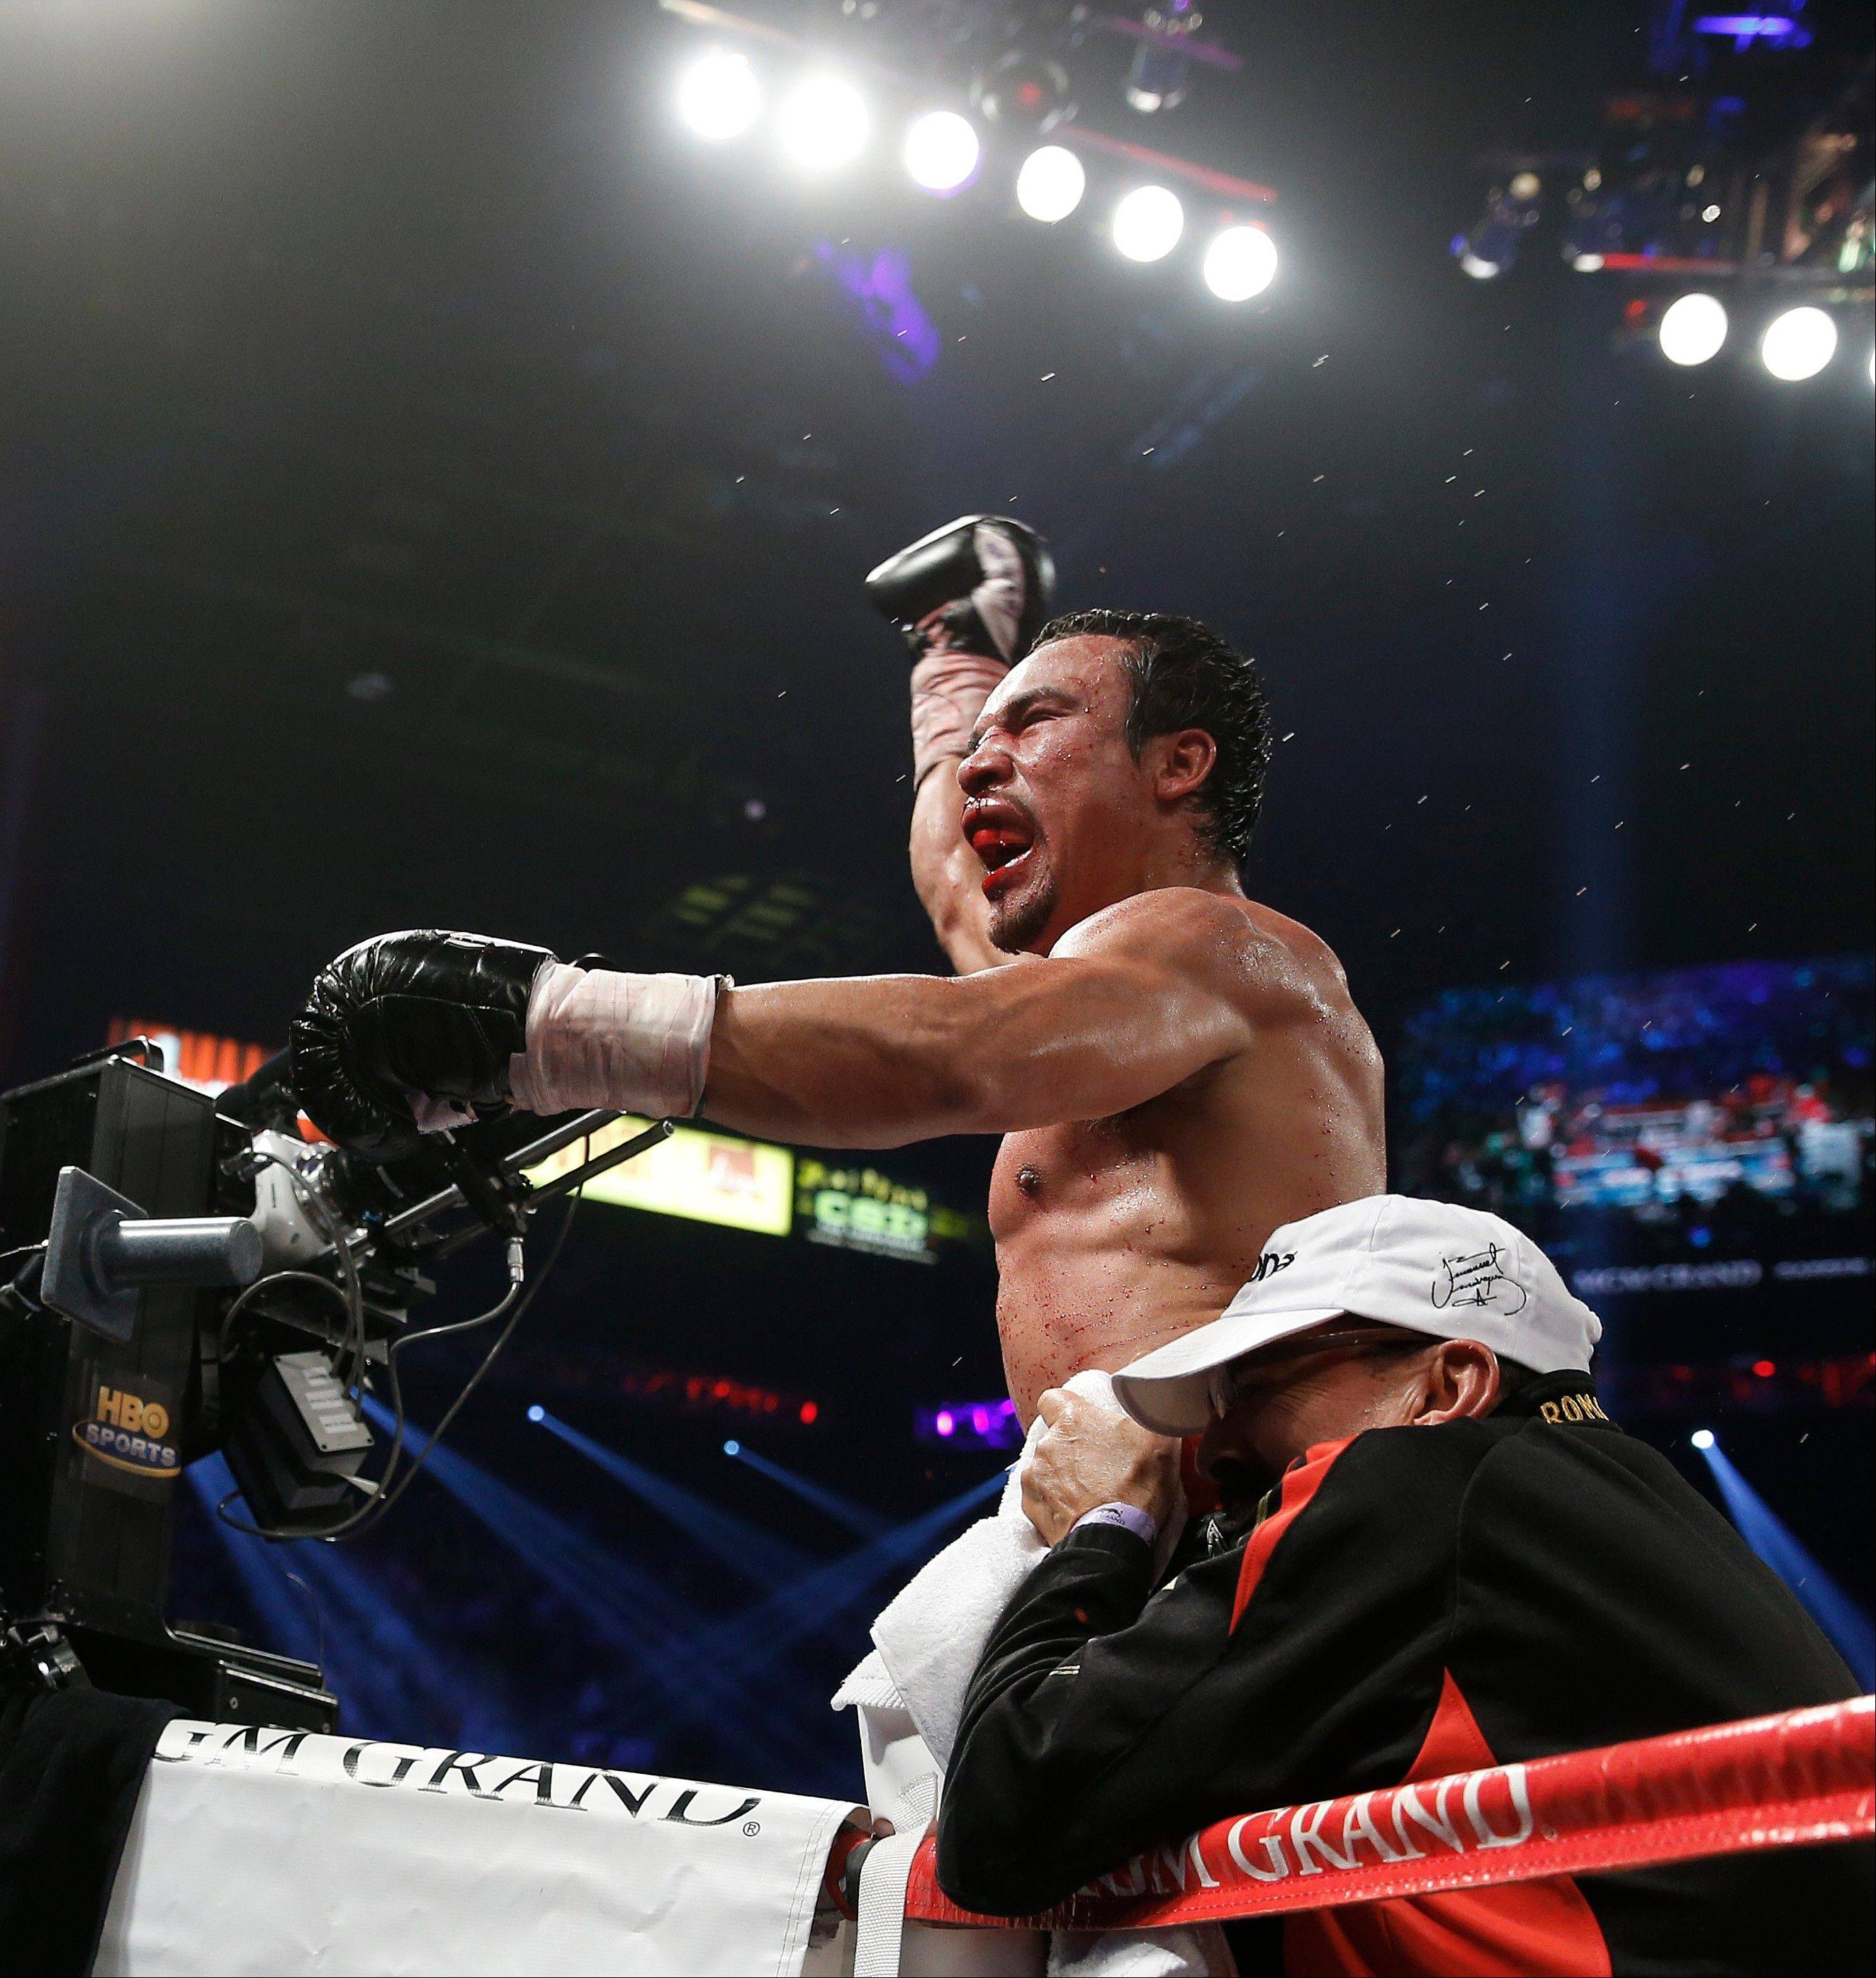 Juan Manuel Marquez celebrates his sixth-round knockout victory over Manny Pacquiao.